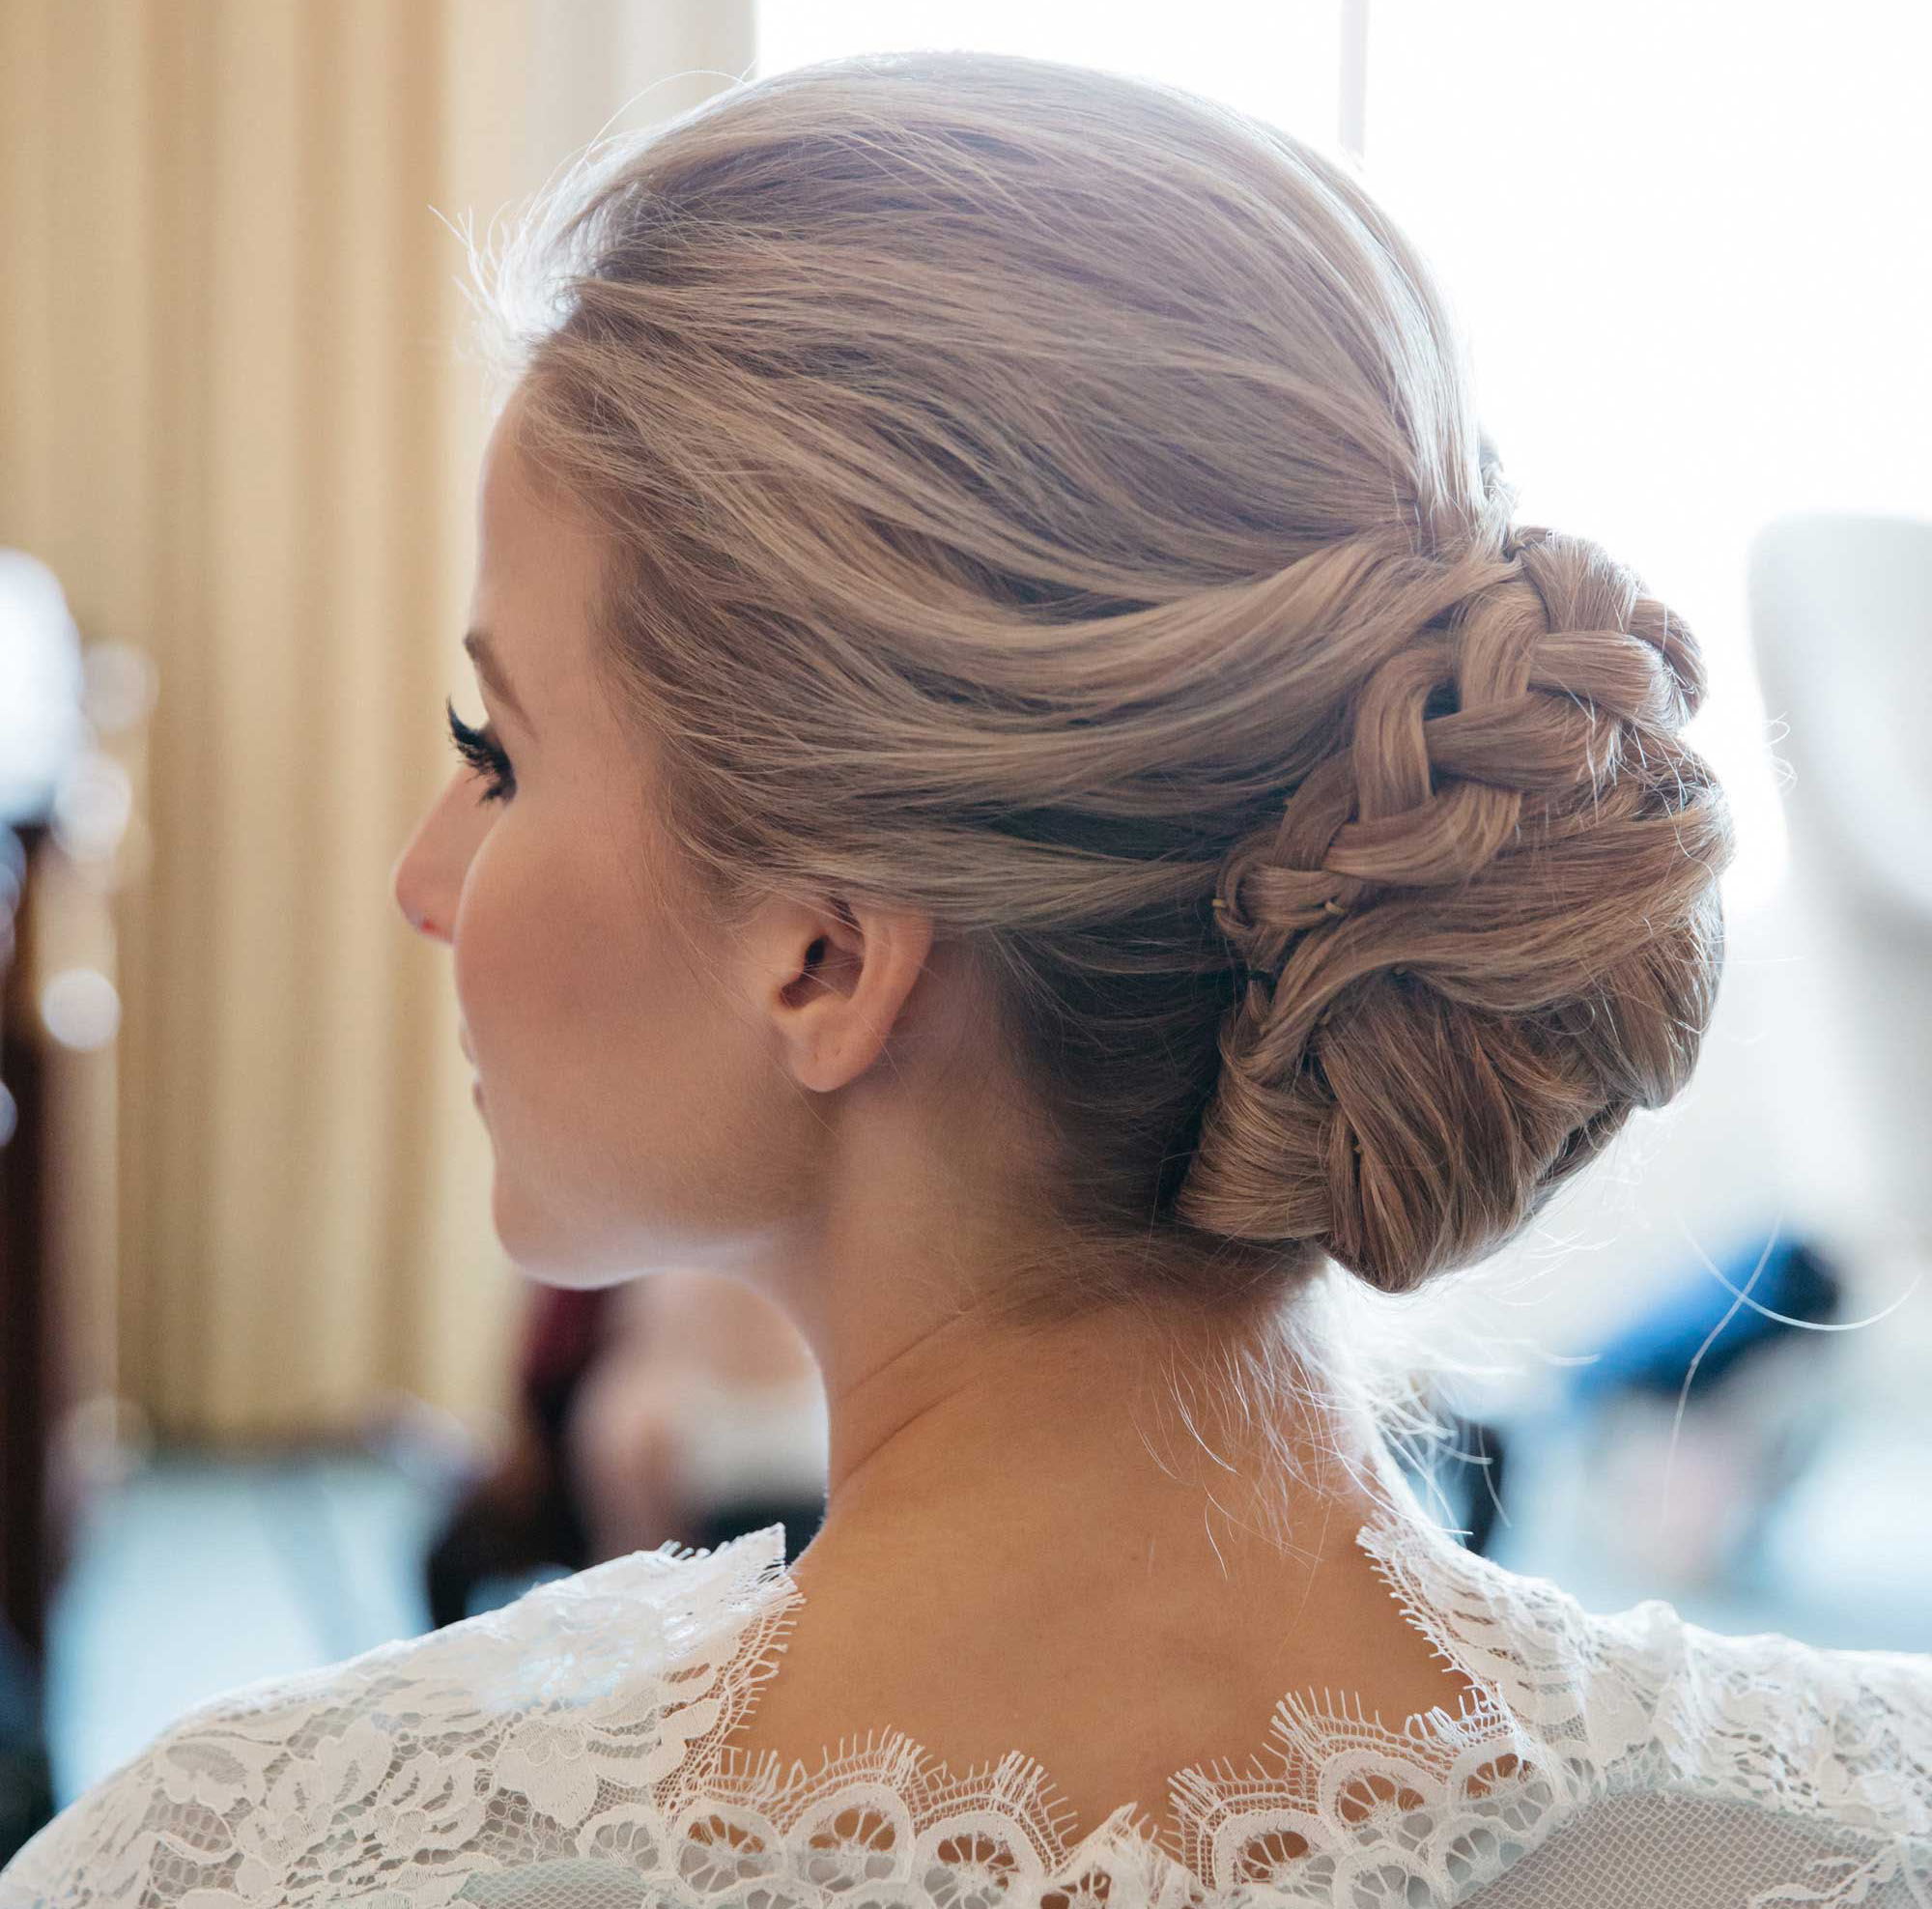 Braided Hairstyles: 5 Ideas For Your Wedding Look – Inside Weddings Throughout Trendy Bouffant And Chignon Bridal Updos For Long Hair (View 8 of 20)